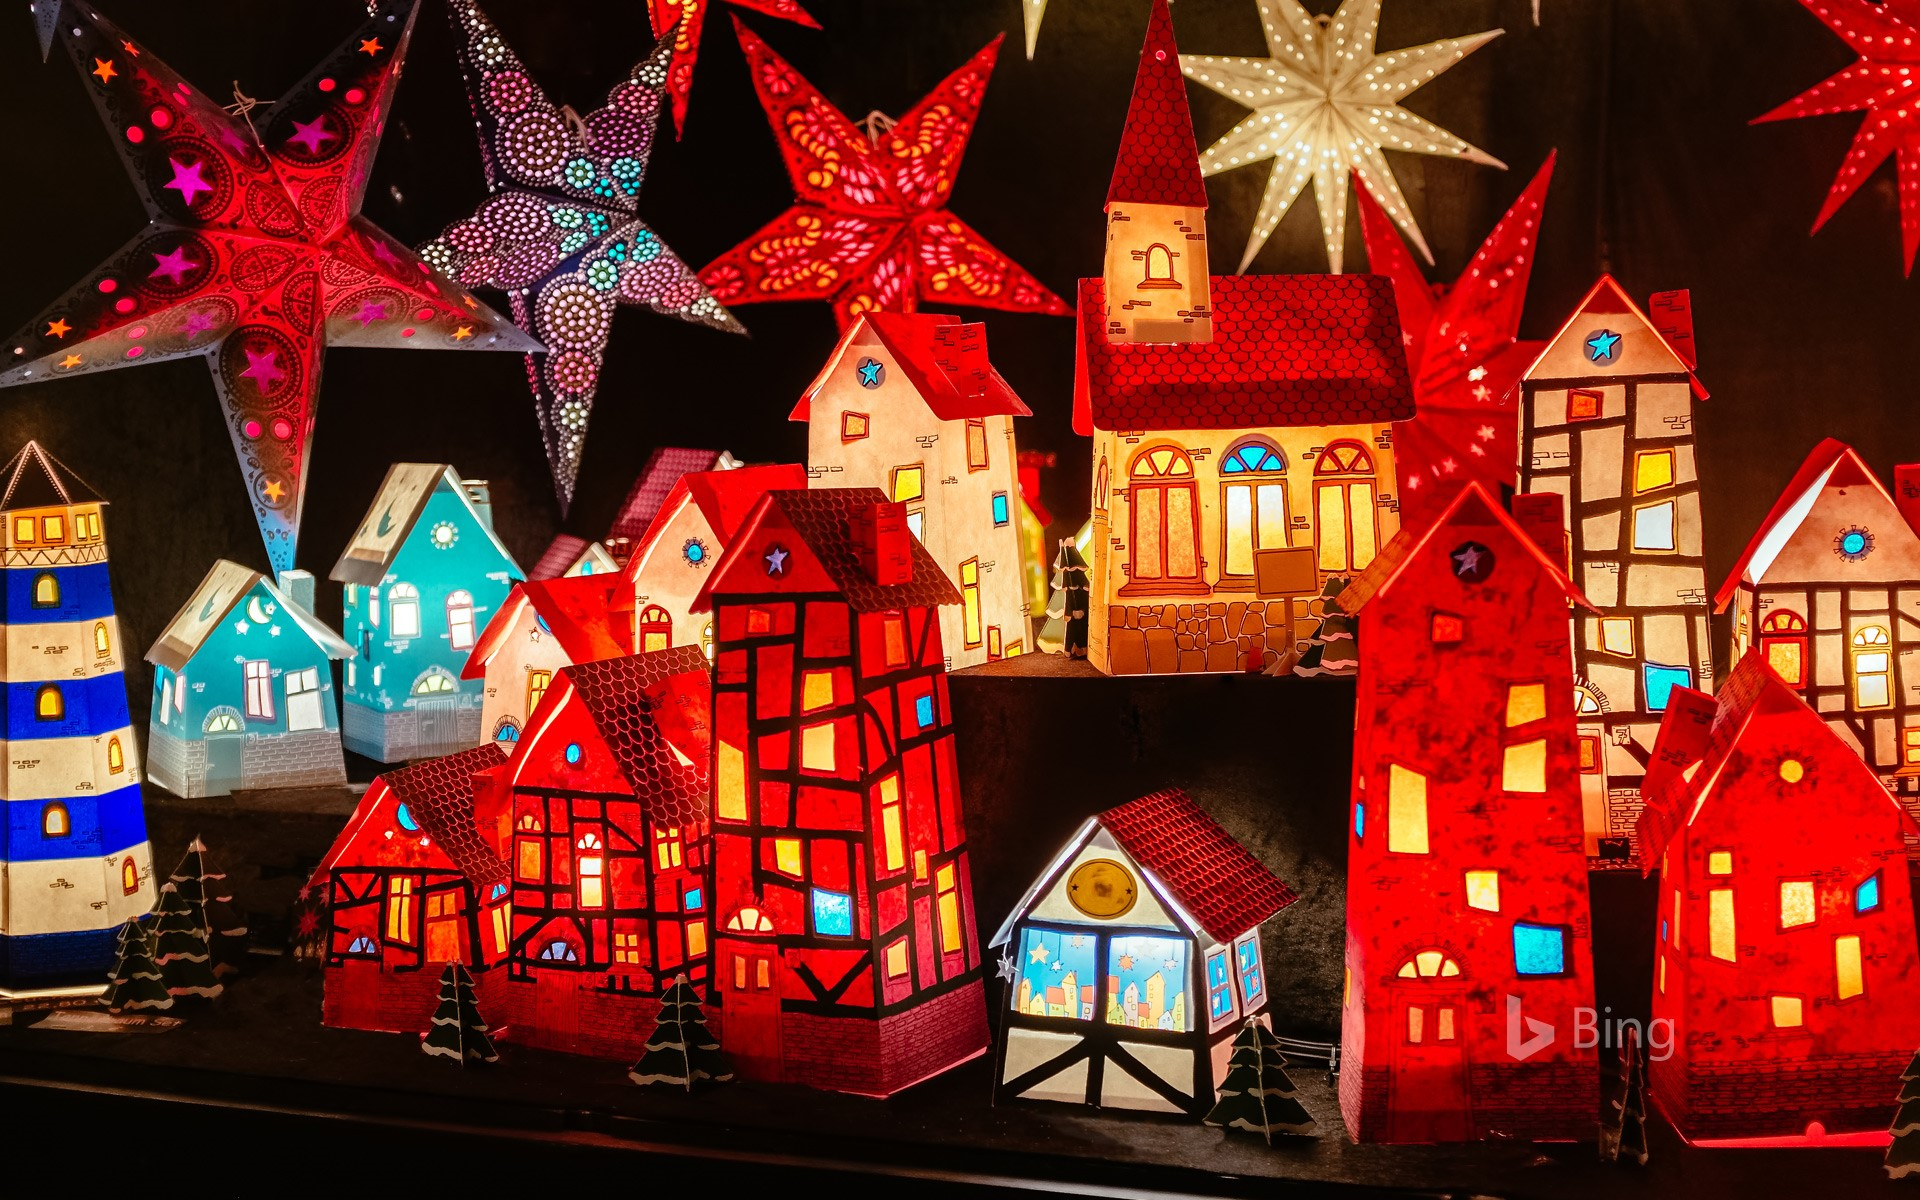 Luminous paper houses and poinsettias at a Christmas market in Hanover, Lower Saxony